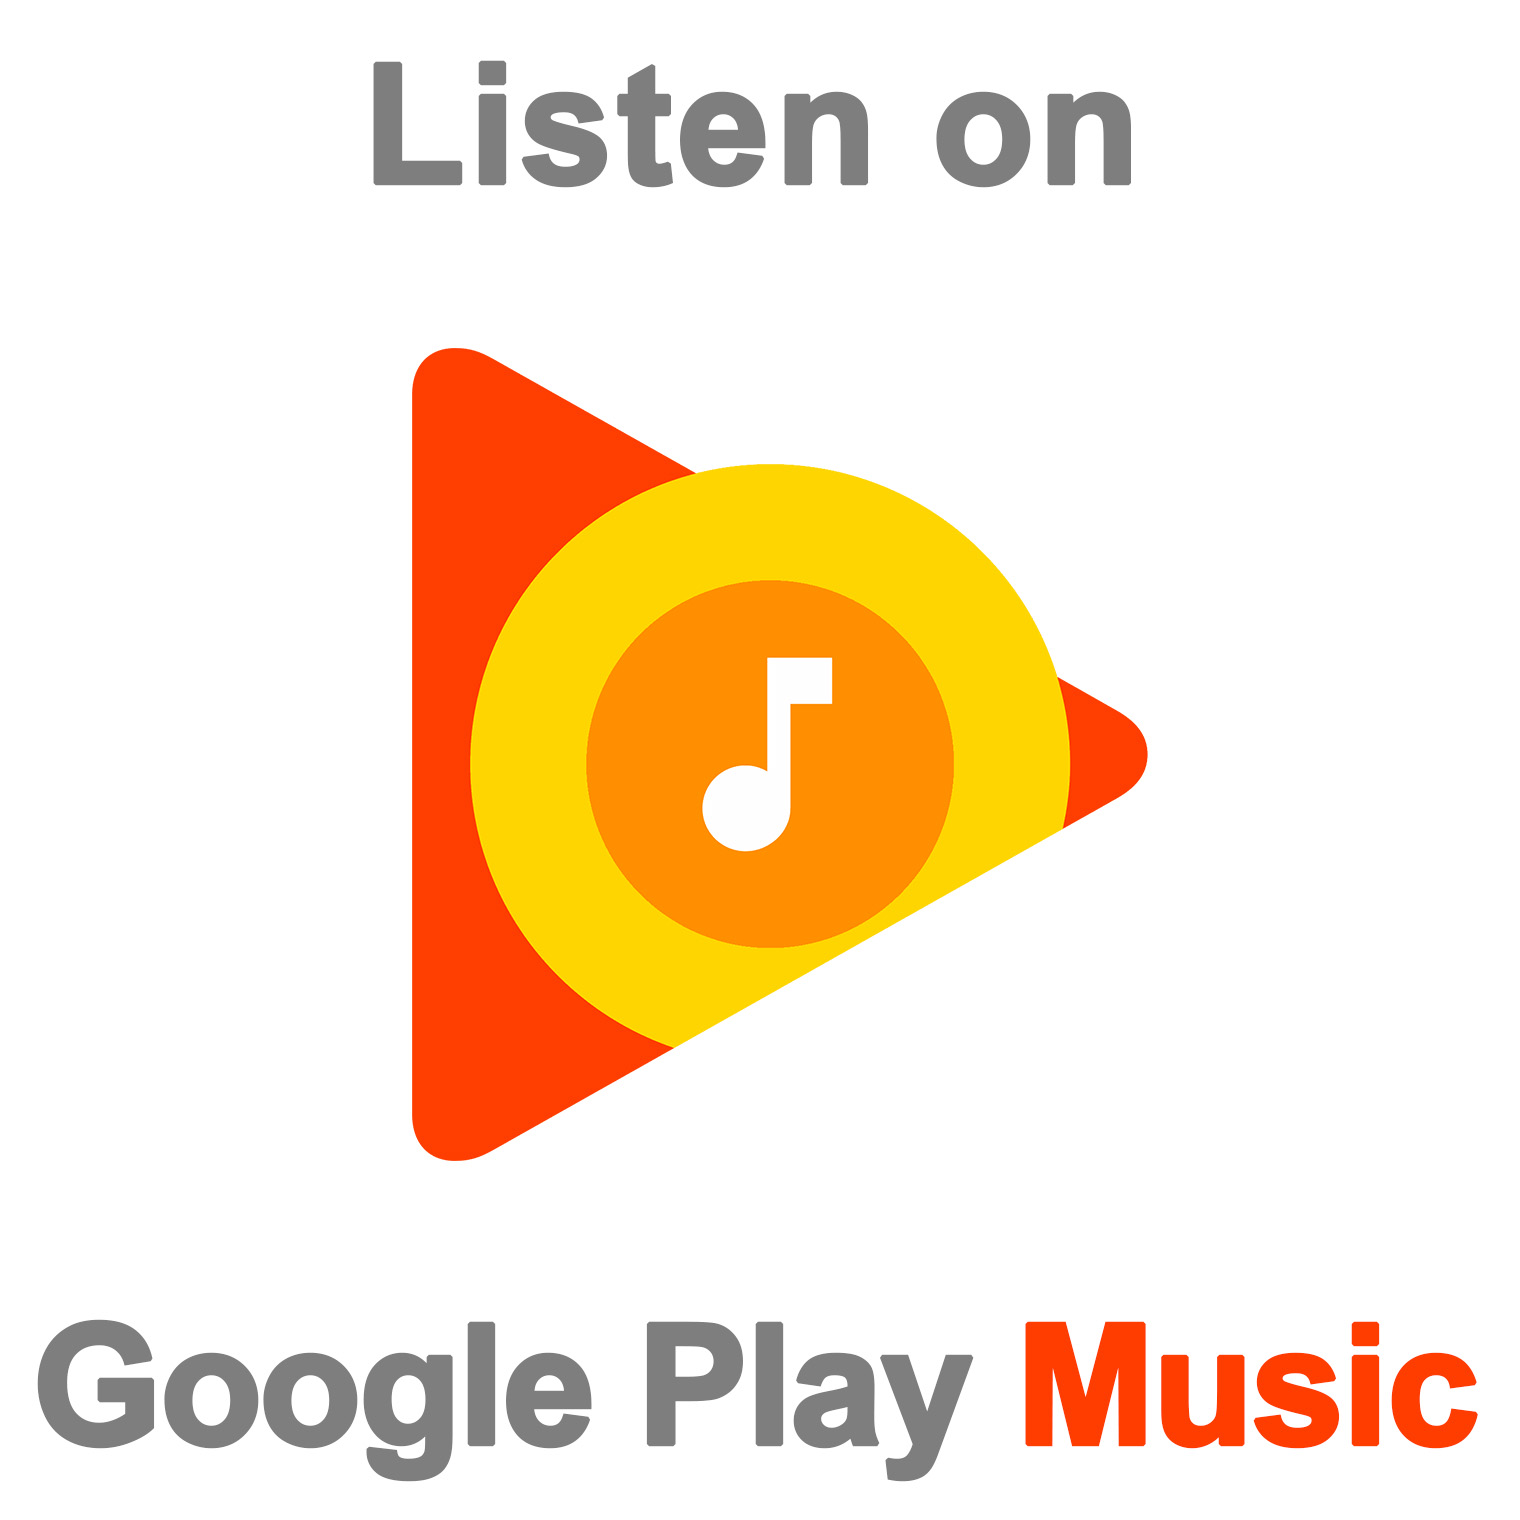 Listen on Google Play Music